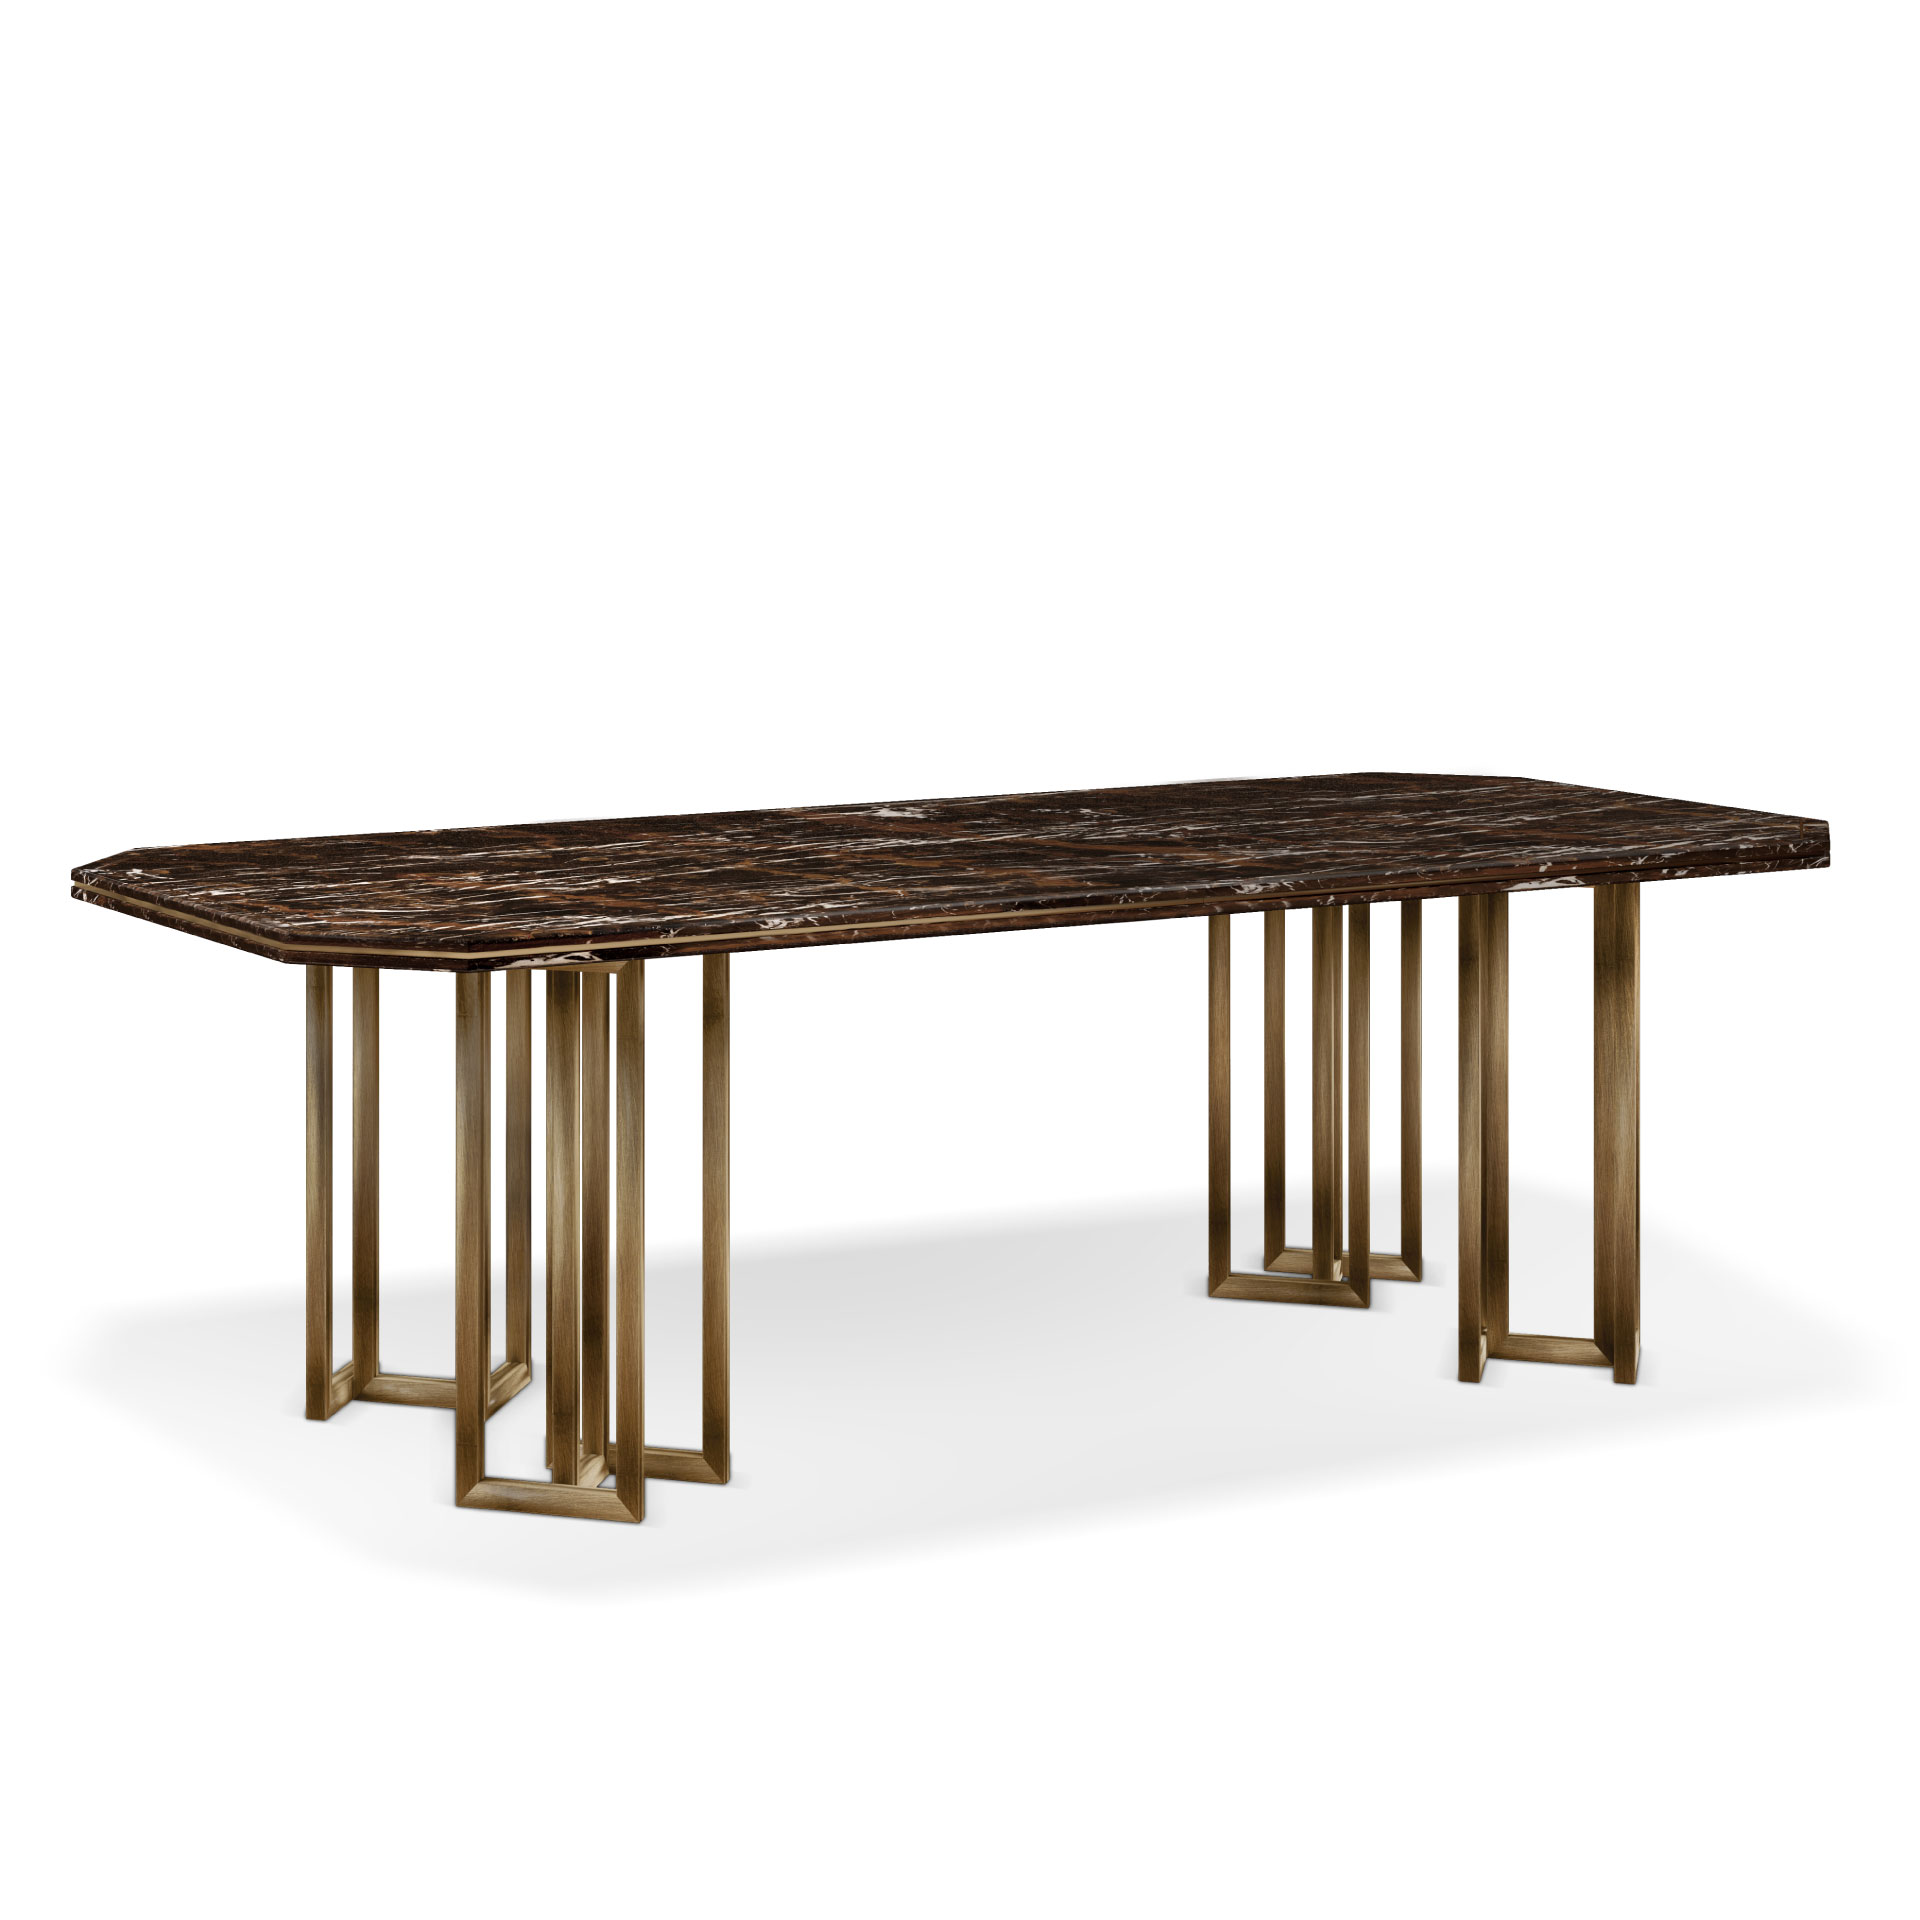 Hancock dining table